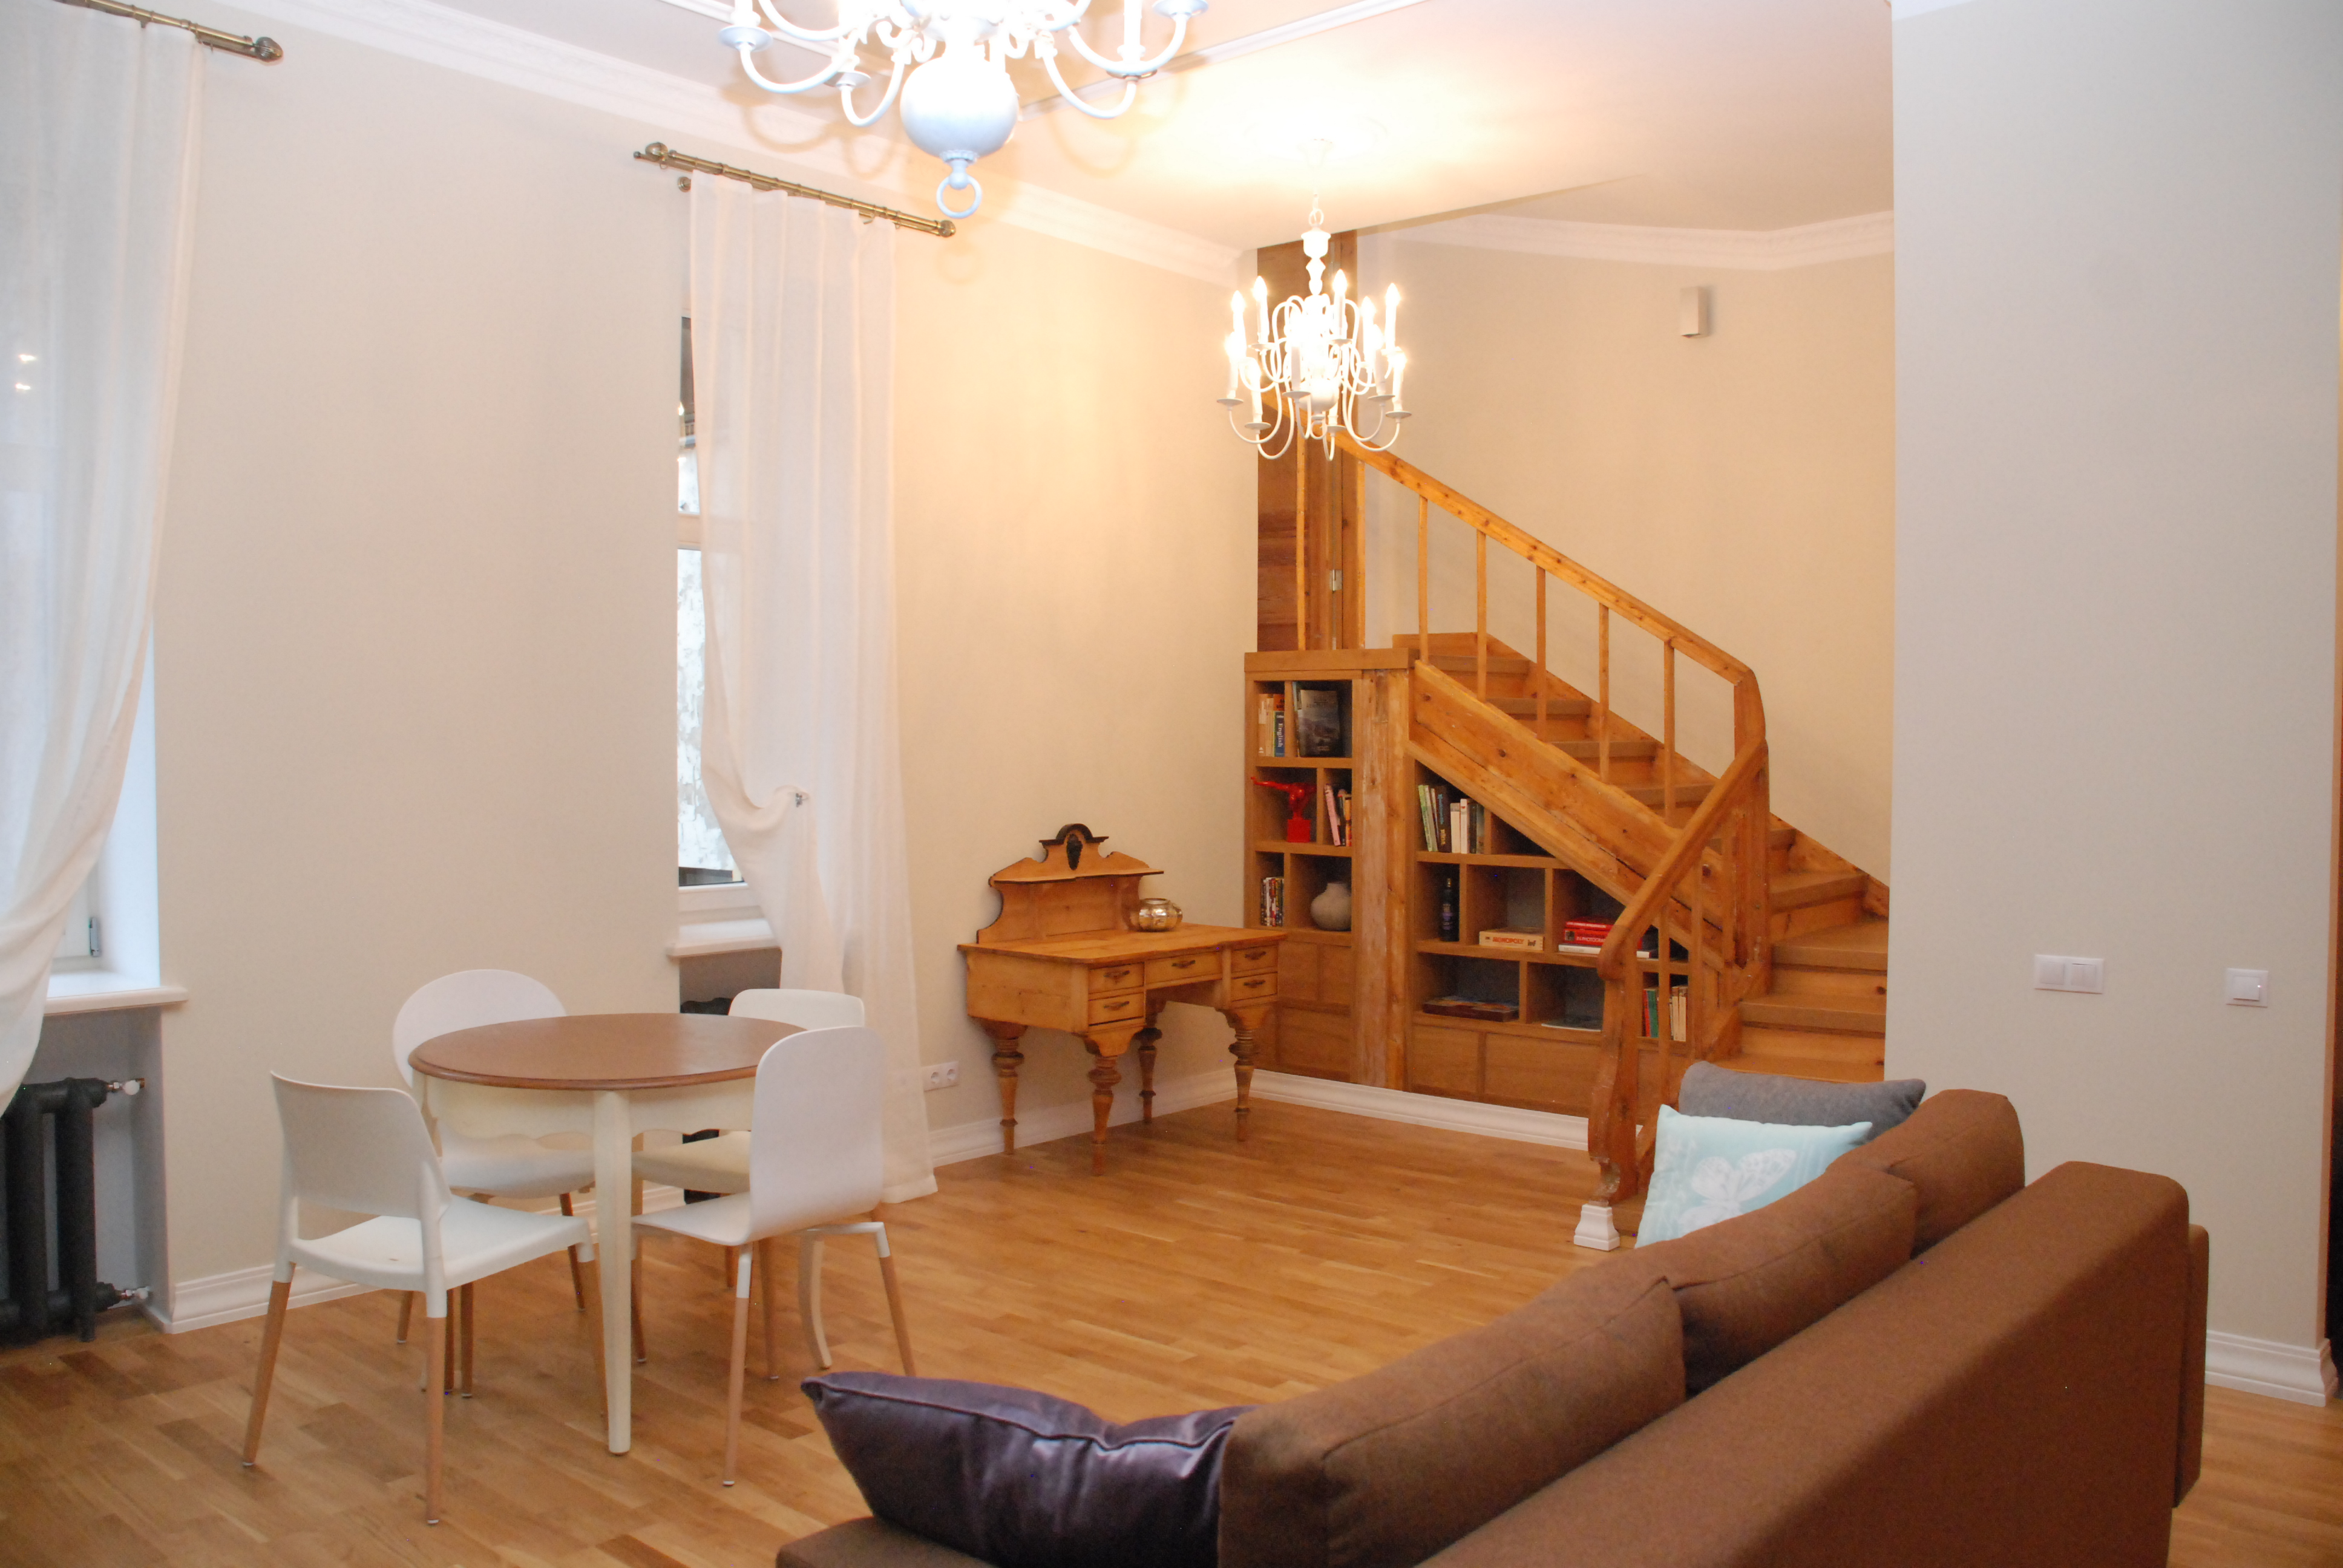 Renting in Riga could not be better